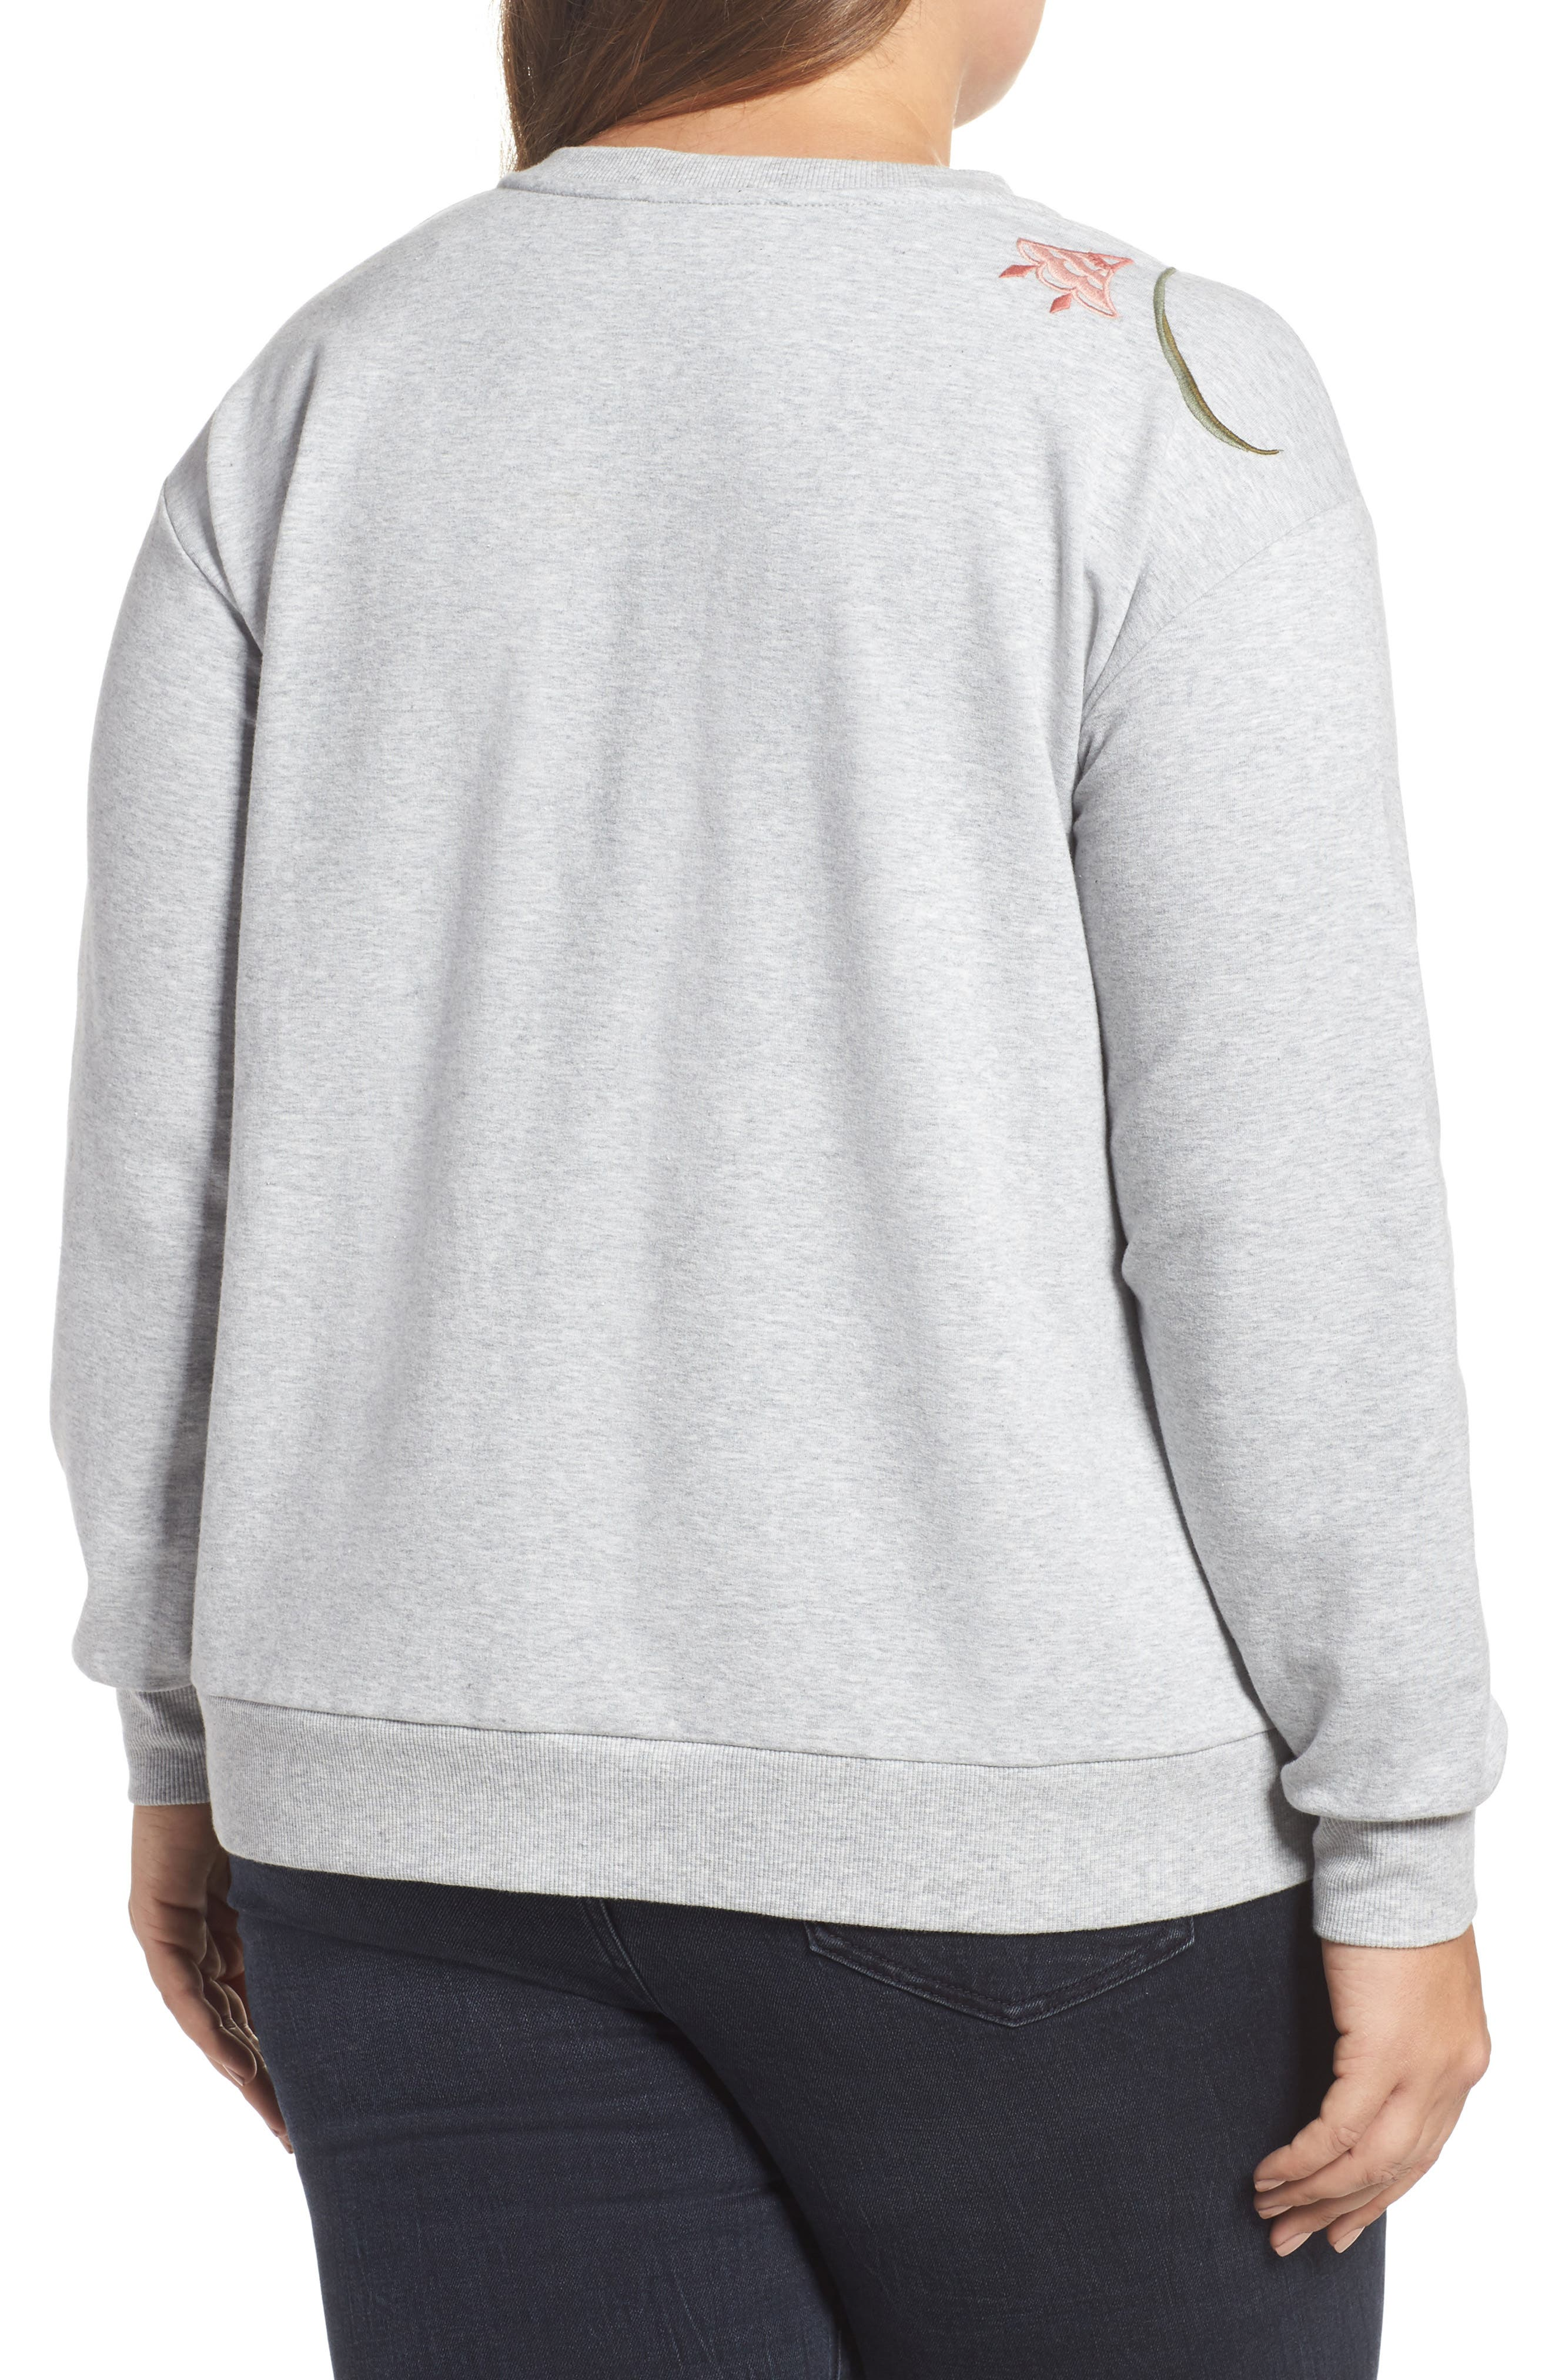 Alternate Image 2  - Two by Vince Camuto Embroidered Sweatshirt (Plus Size)